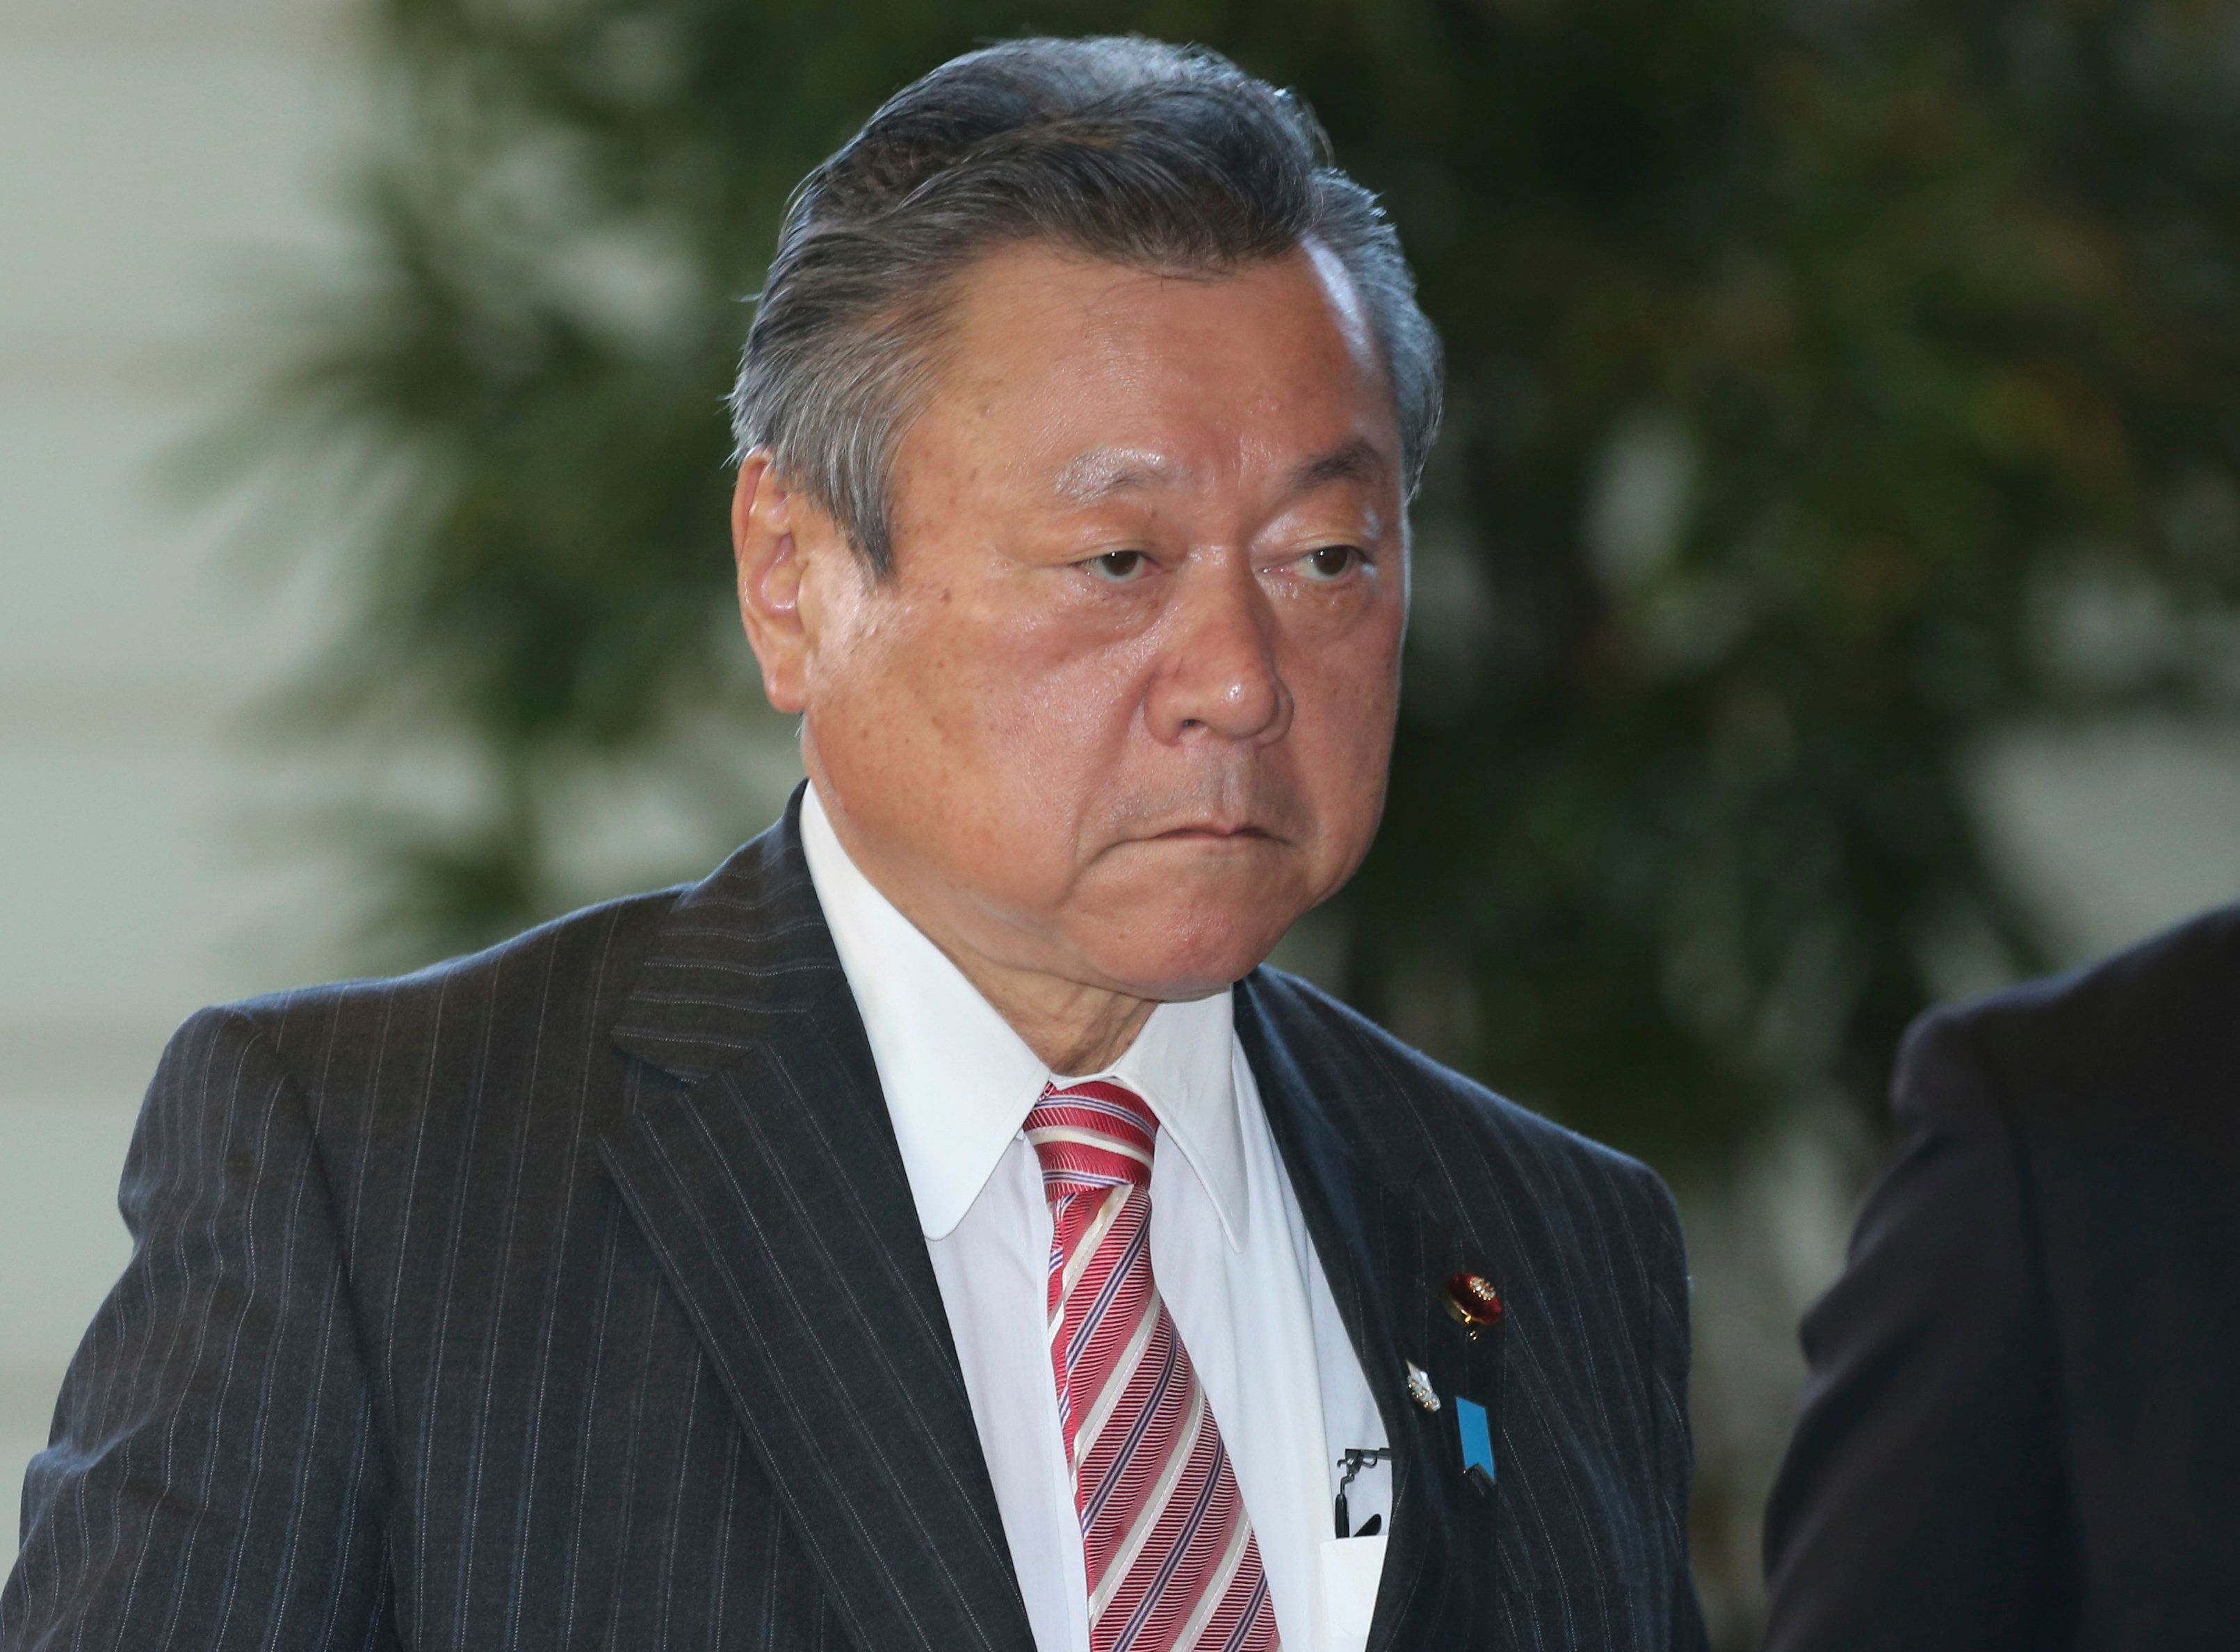 Yoshitaka Sakurada may be Japan's new minister in charge of cybersecurity, but he doesn't actually use computers.